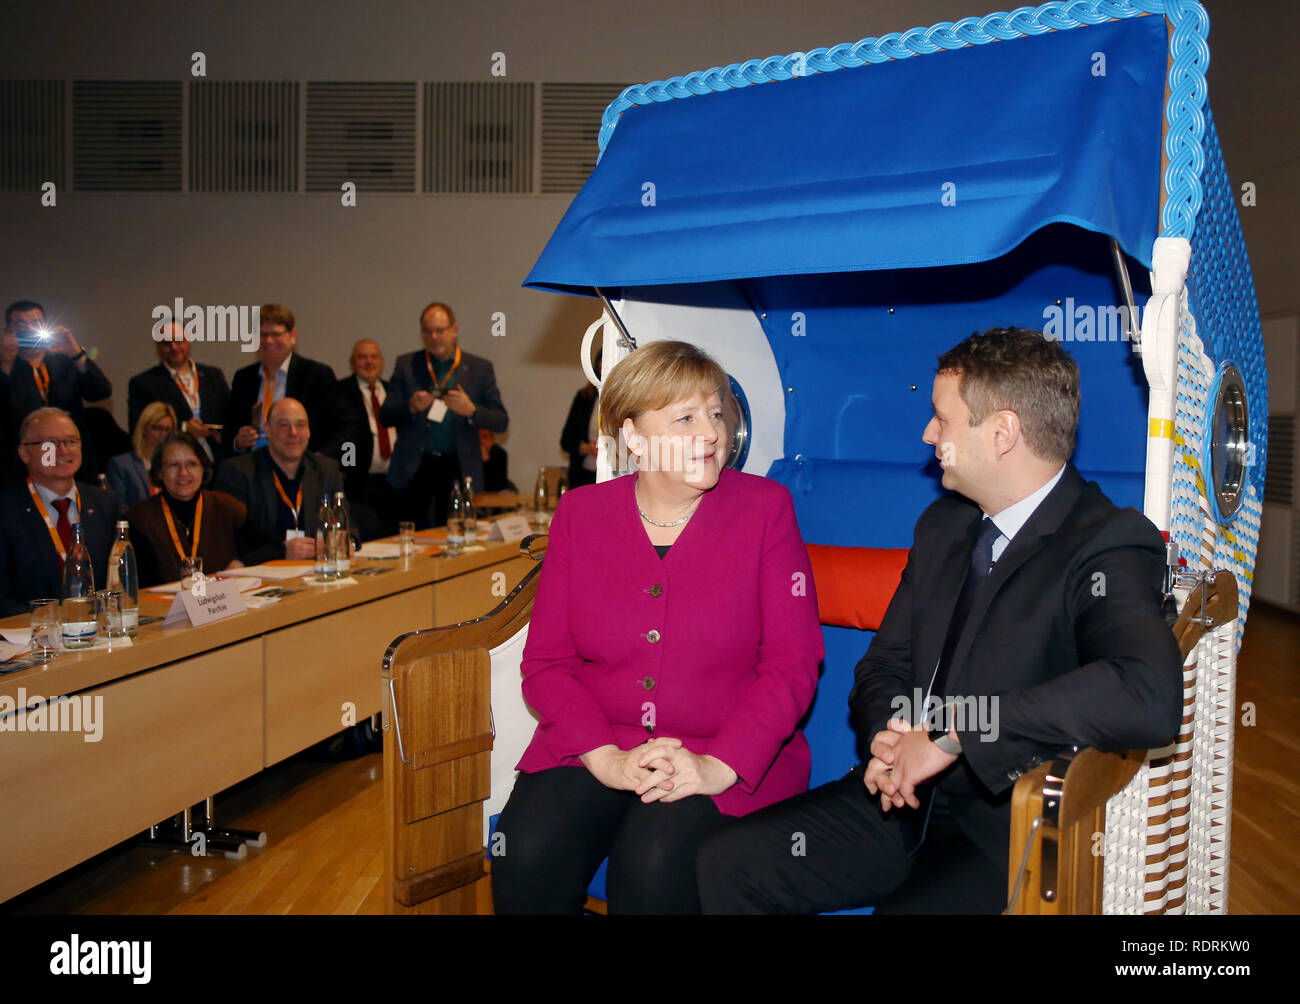 Rostock, Germany. 19th Jan, 2019. Chancellor Angela Merkel (CDU) sits with the state chairman of the CDU Mecklenburg-Western Pomerania, Vincent Kokert, in a beach chair which she received as a gift at the state party conference of the CDU Mecklenburg-Western Pomerania. The CDU Mecklenburg-Western Pomerania will meet in the city hall for their 34th state party conference. Credit: Danny Gohlke/dpa/Alamy Live News Stock Photo